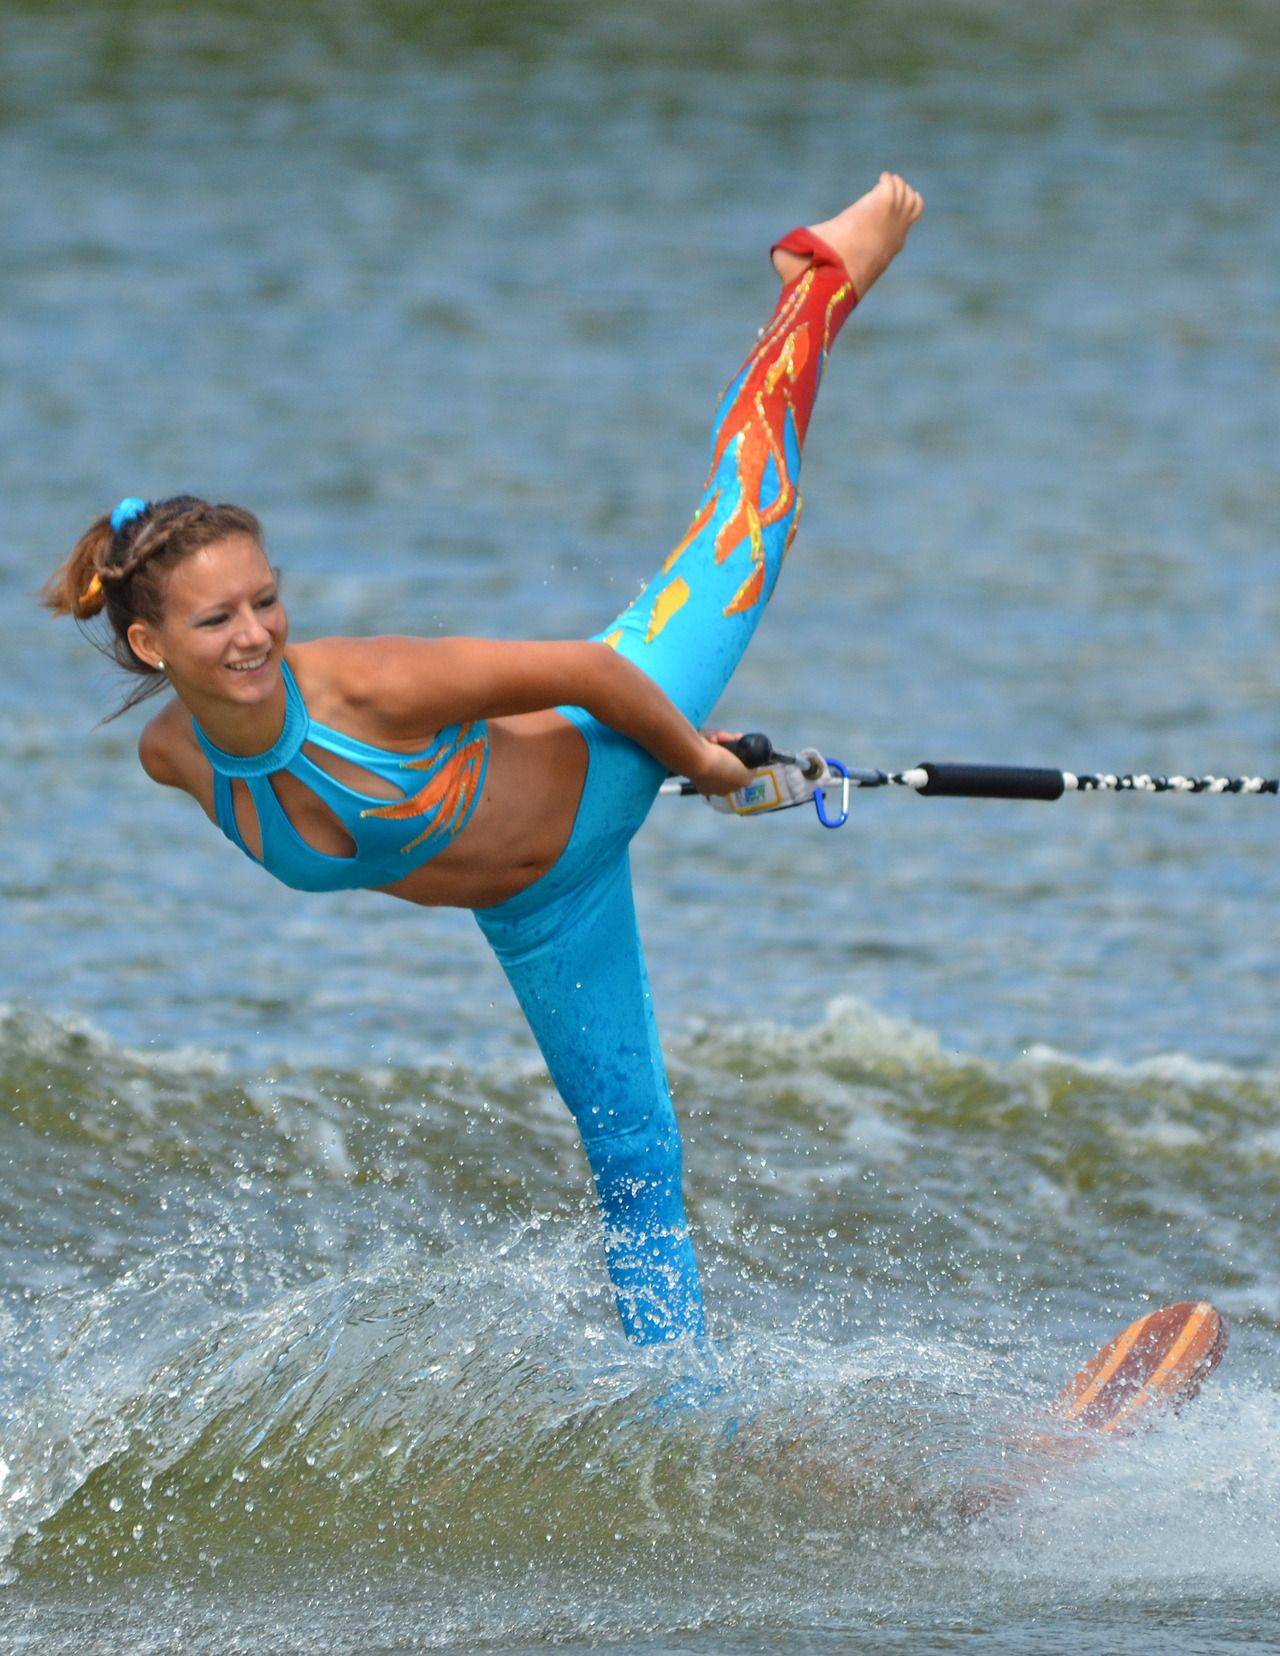 Gorgeous Swivel Ski Costume Want For Competitions Water Skiing Skiing Surfing